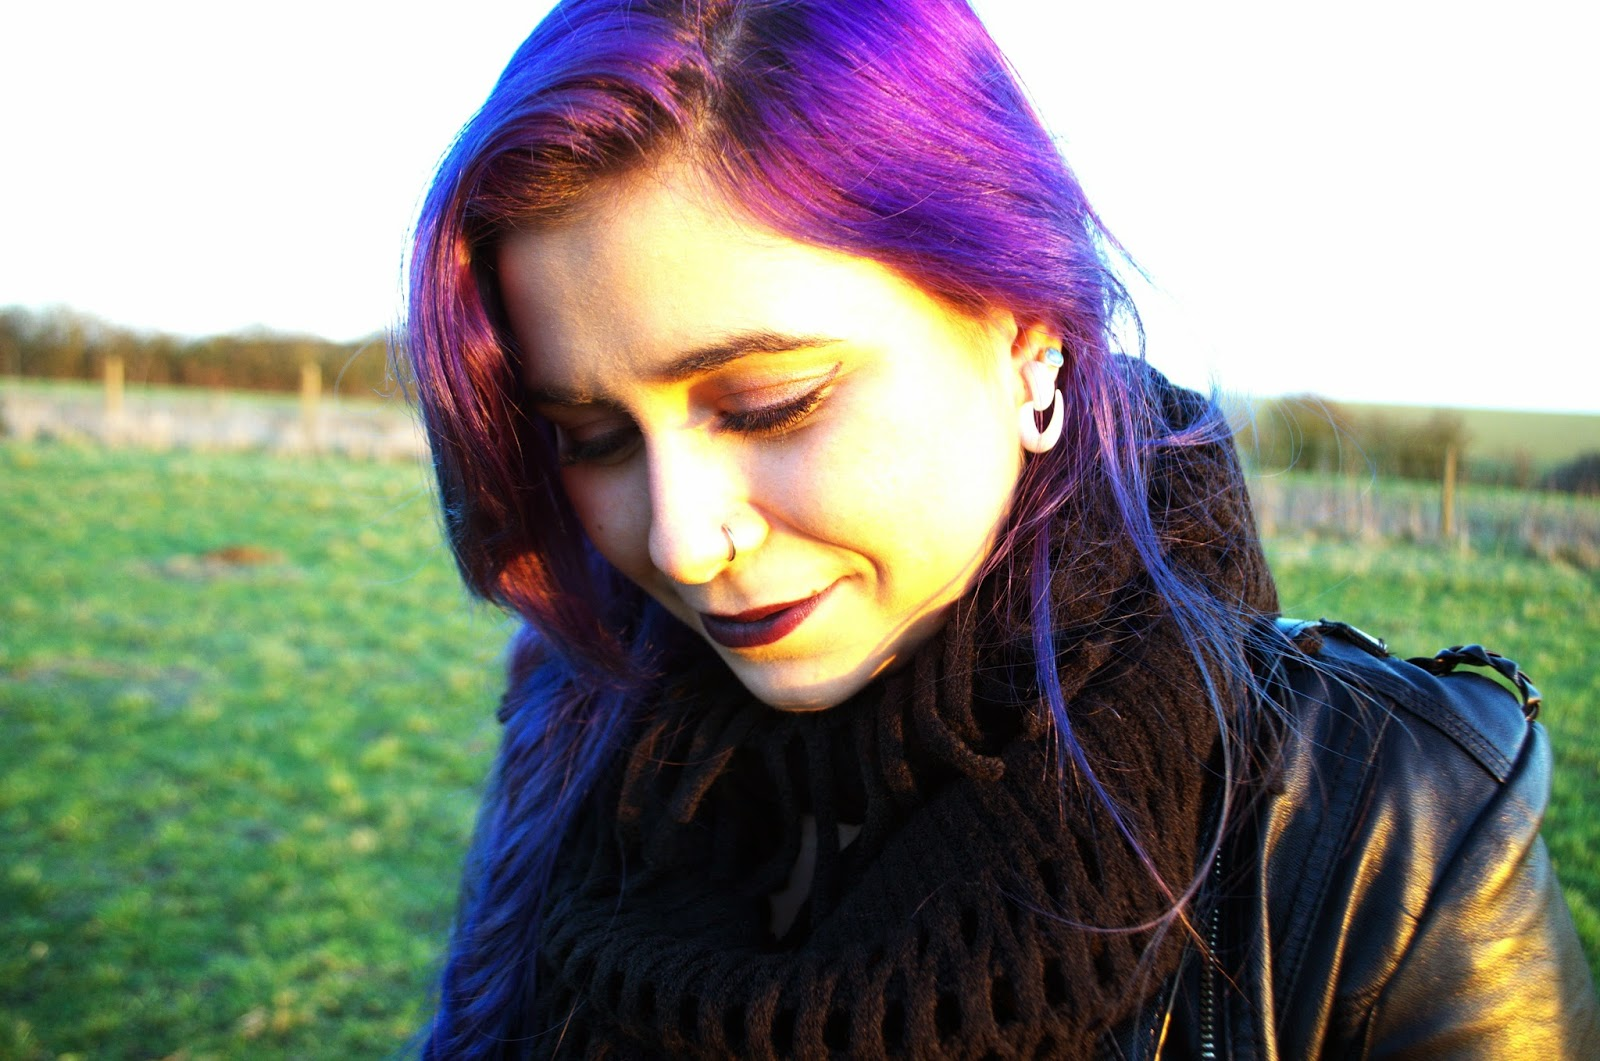 Grunge fashion and purple hair.